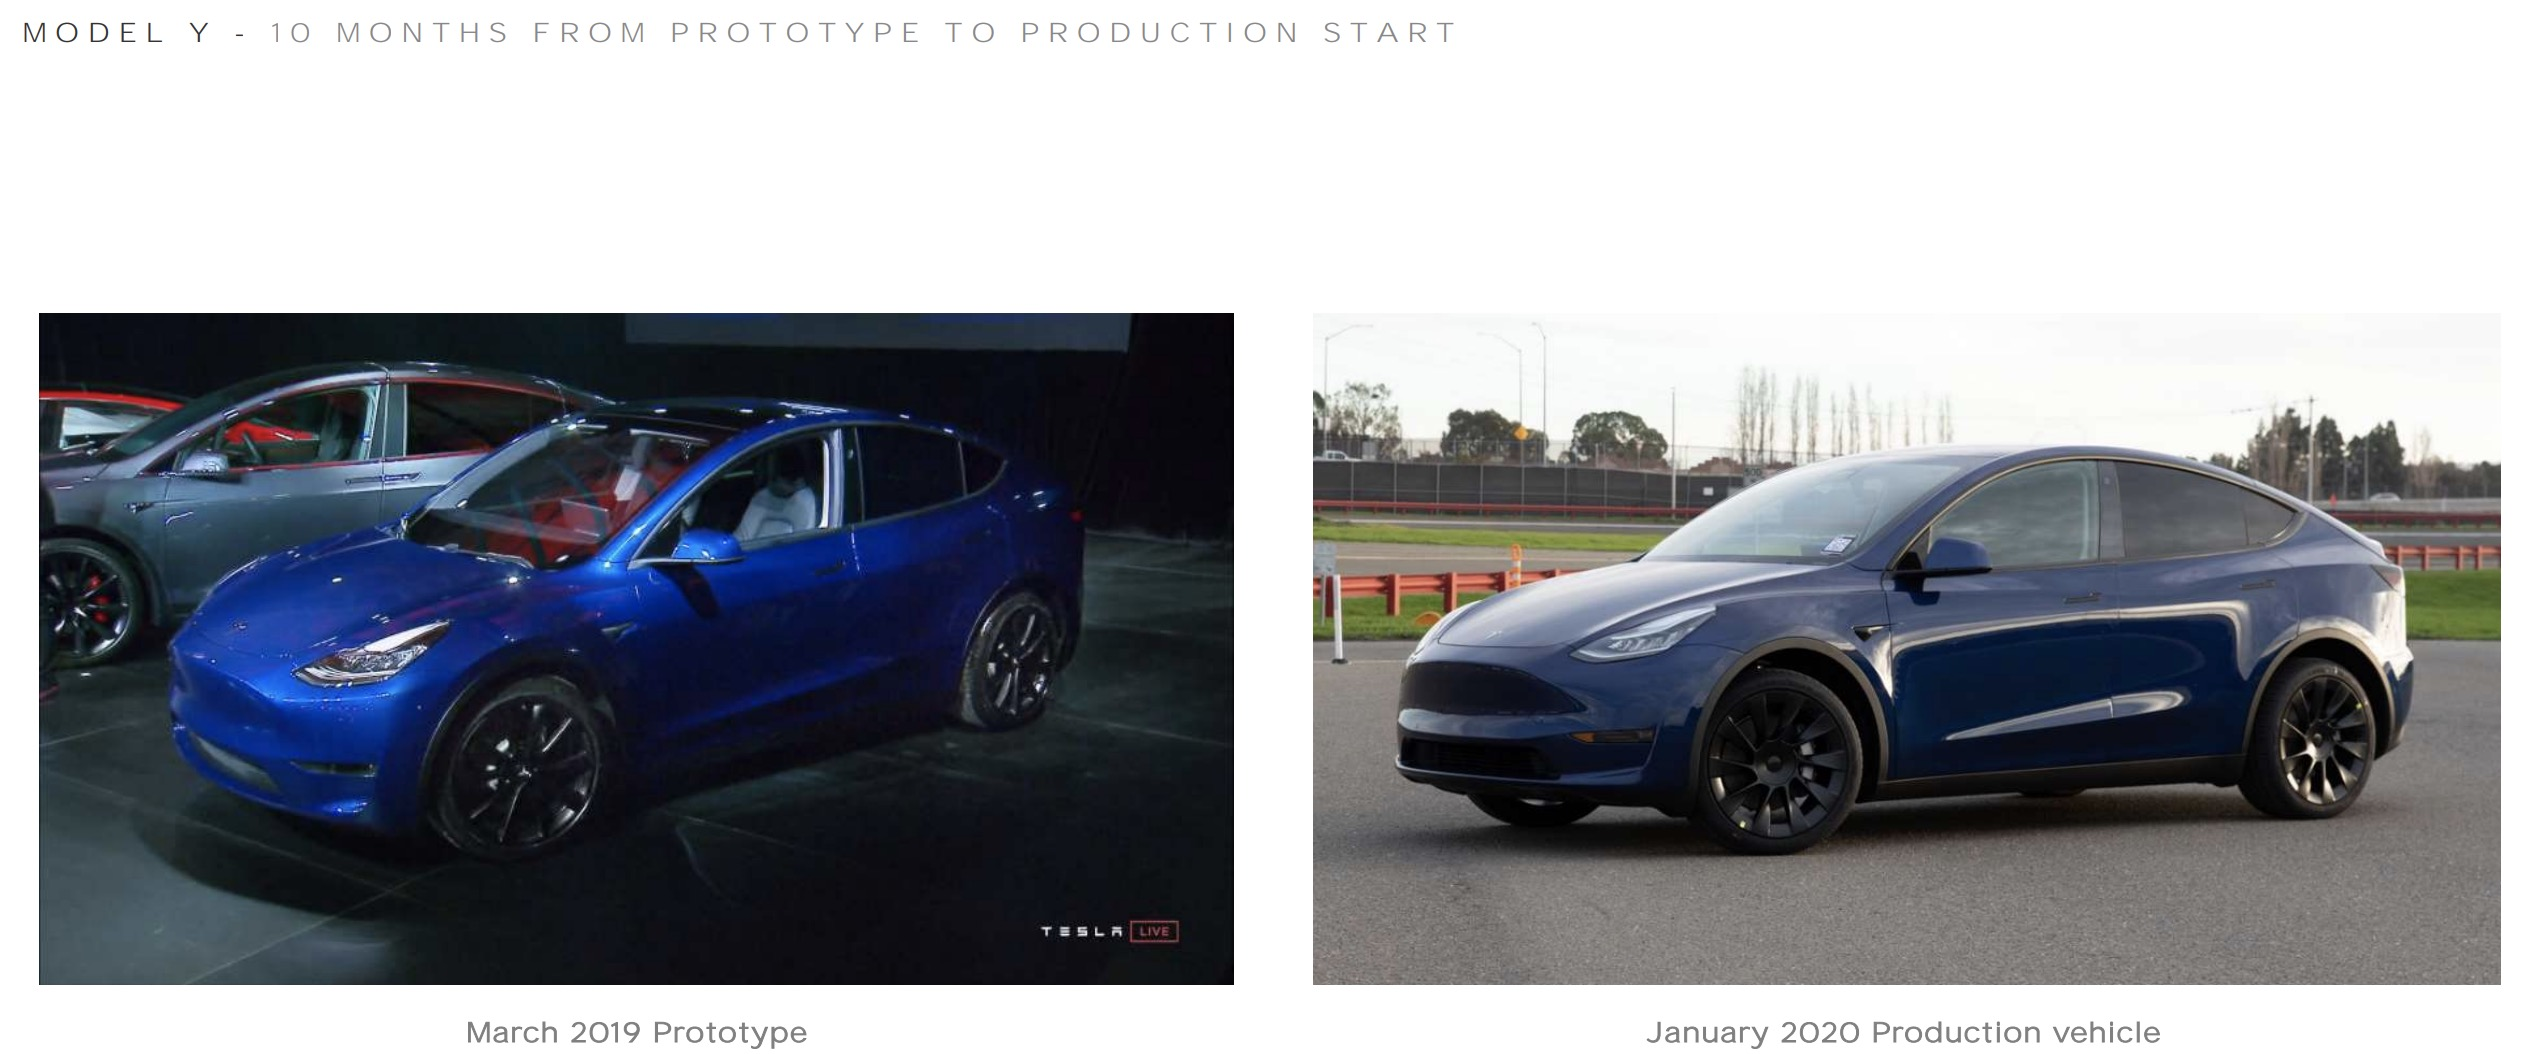 Tesla Model Y Deliveries To Start Mid 2020 In Canada As Q4